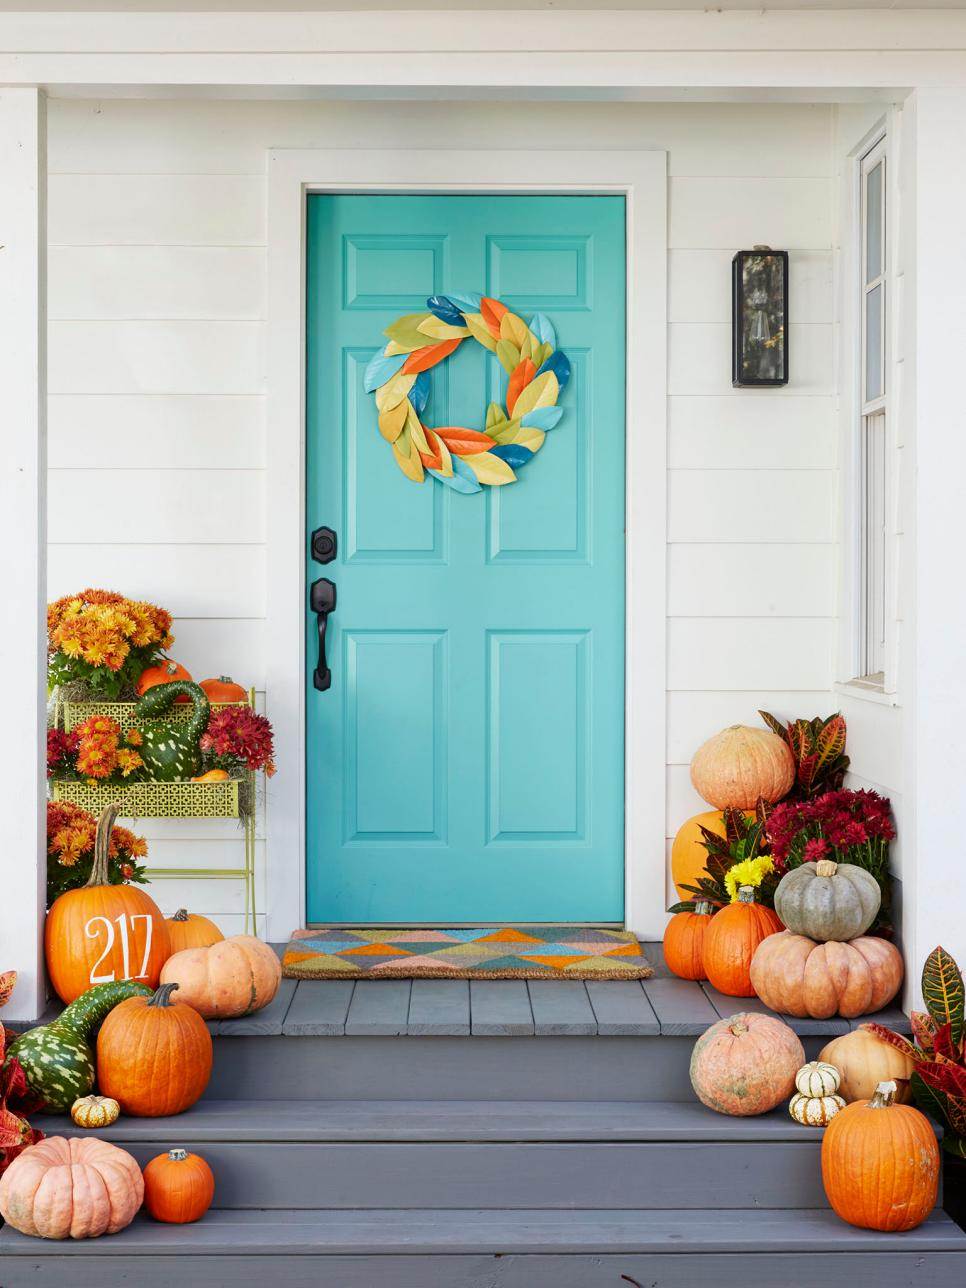 our favorite fall decorating ideas interior design styles and color schemes for home decorating hgtv